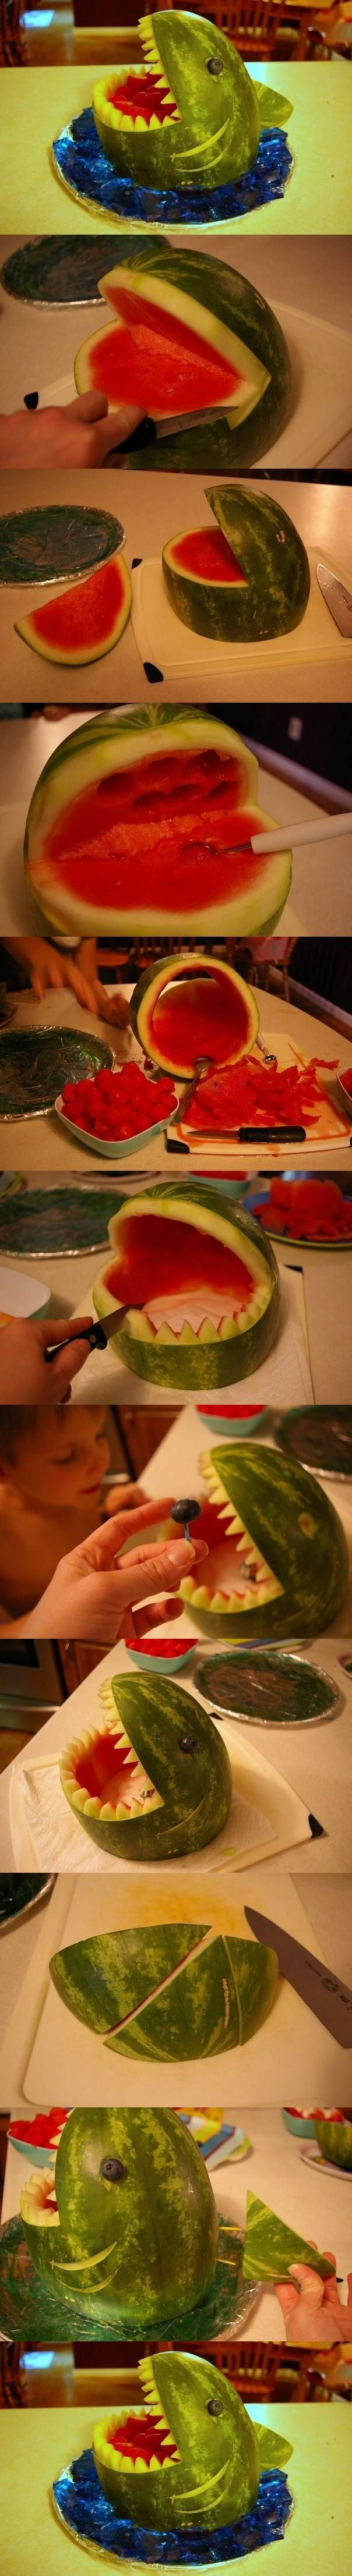 DIY Watermelon Shark Carving Internet Tutorial